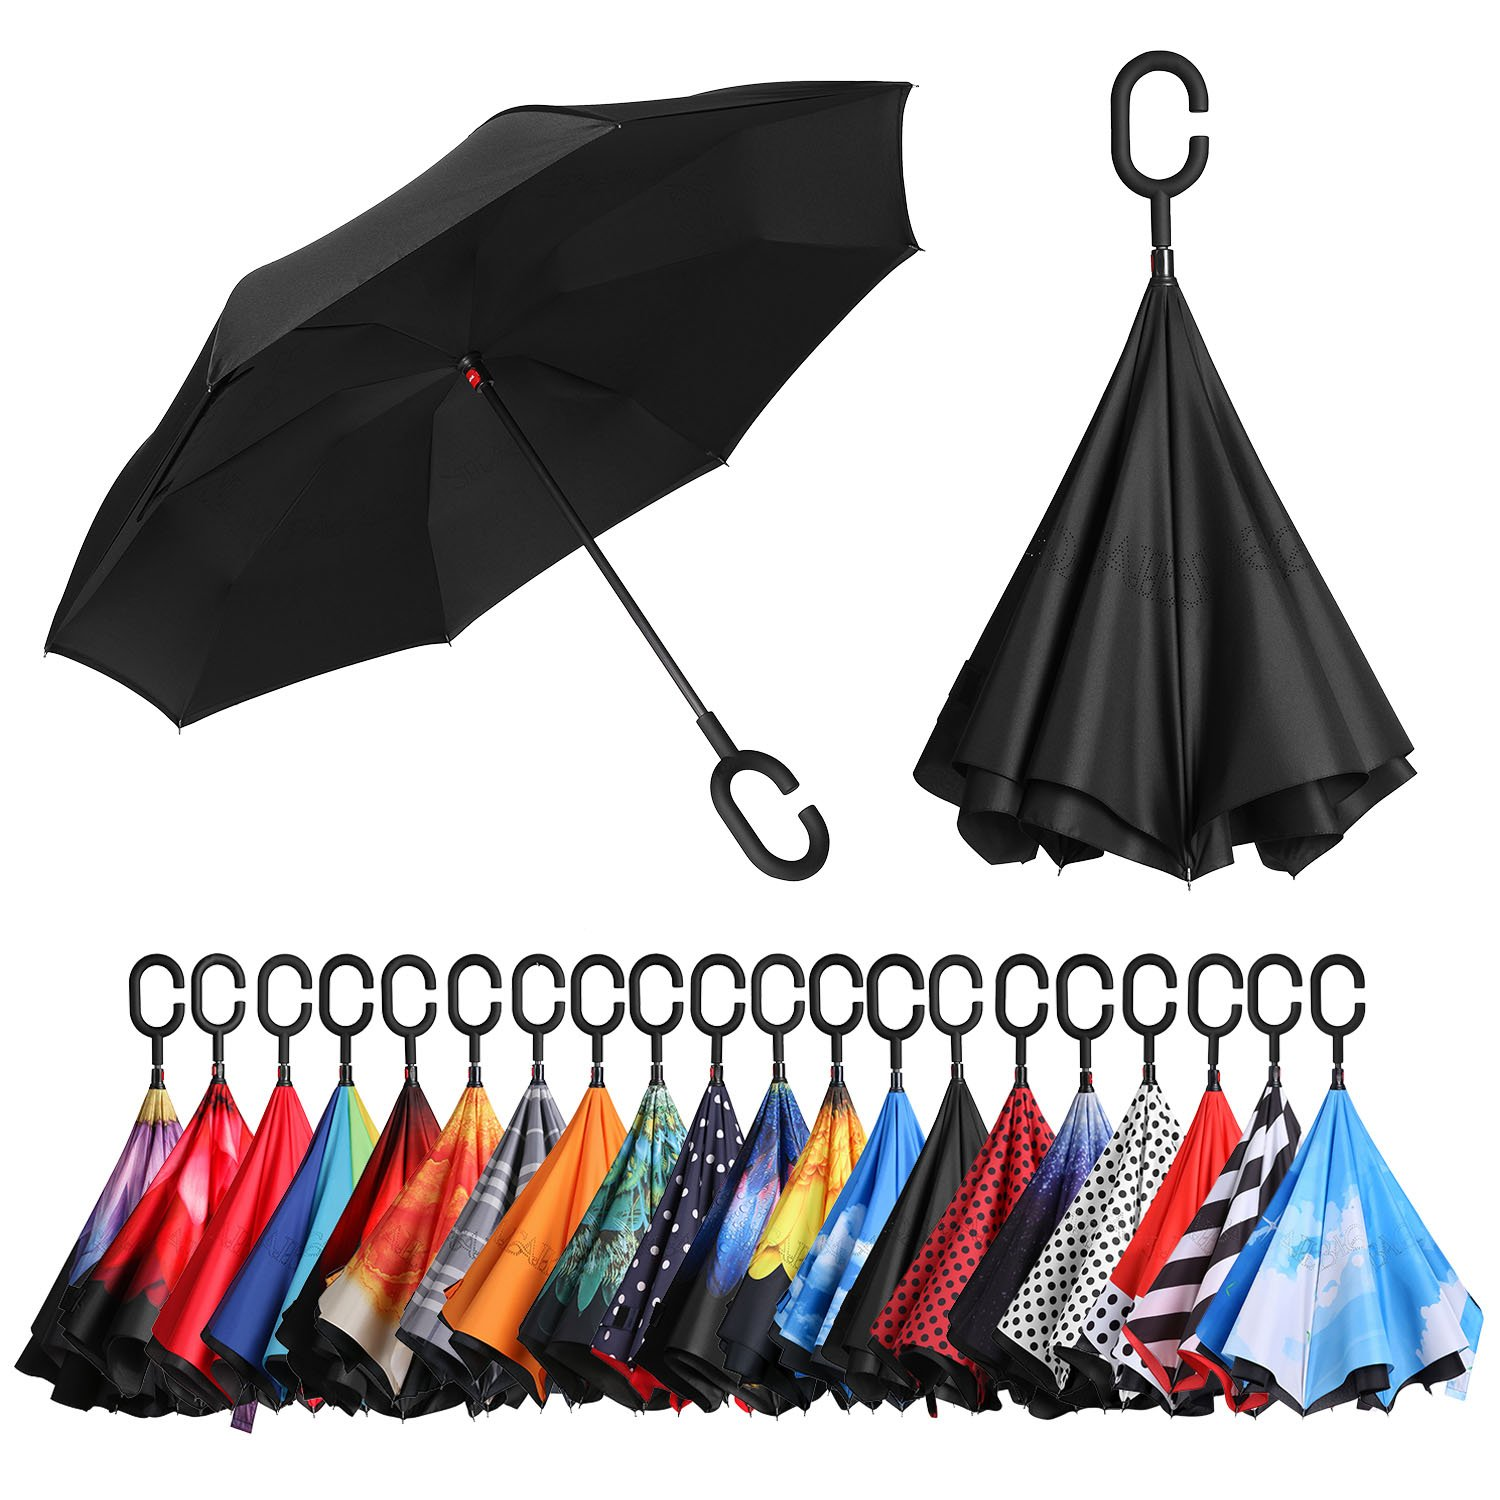 BAGAIL Double Layer Inverted Umbrellas Reverse Folding Umbrella Windproof UV Protection Big Straight Umbrella for Car Rain Outdoor with C-Shaped Handle Black